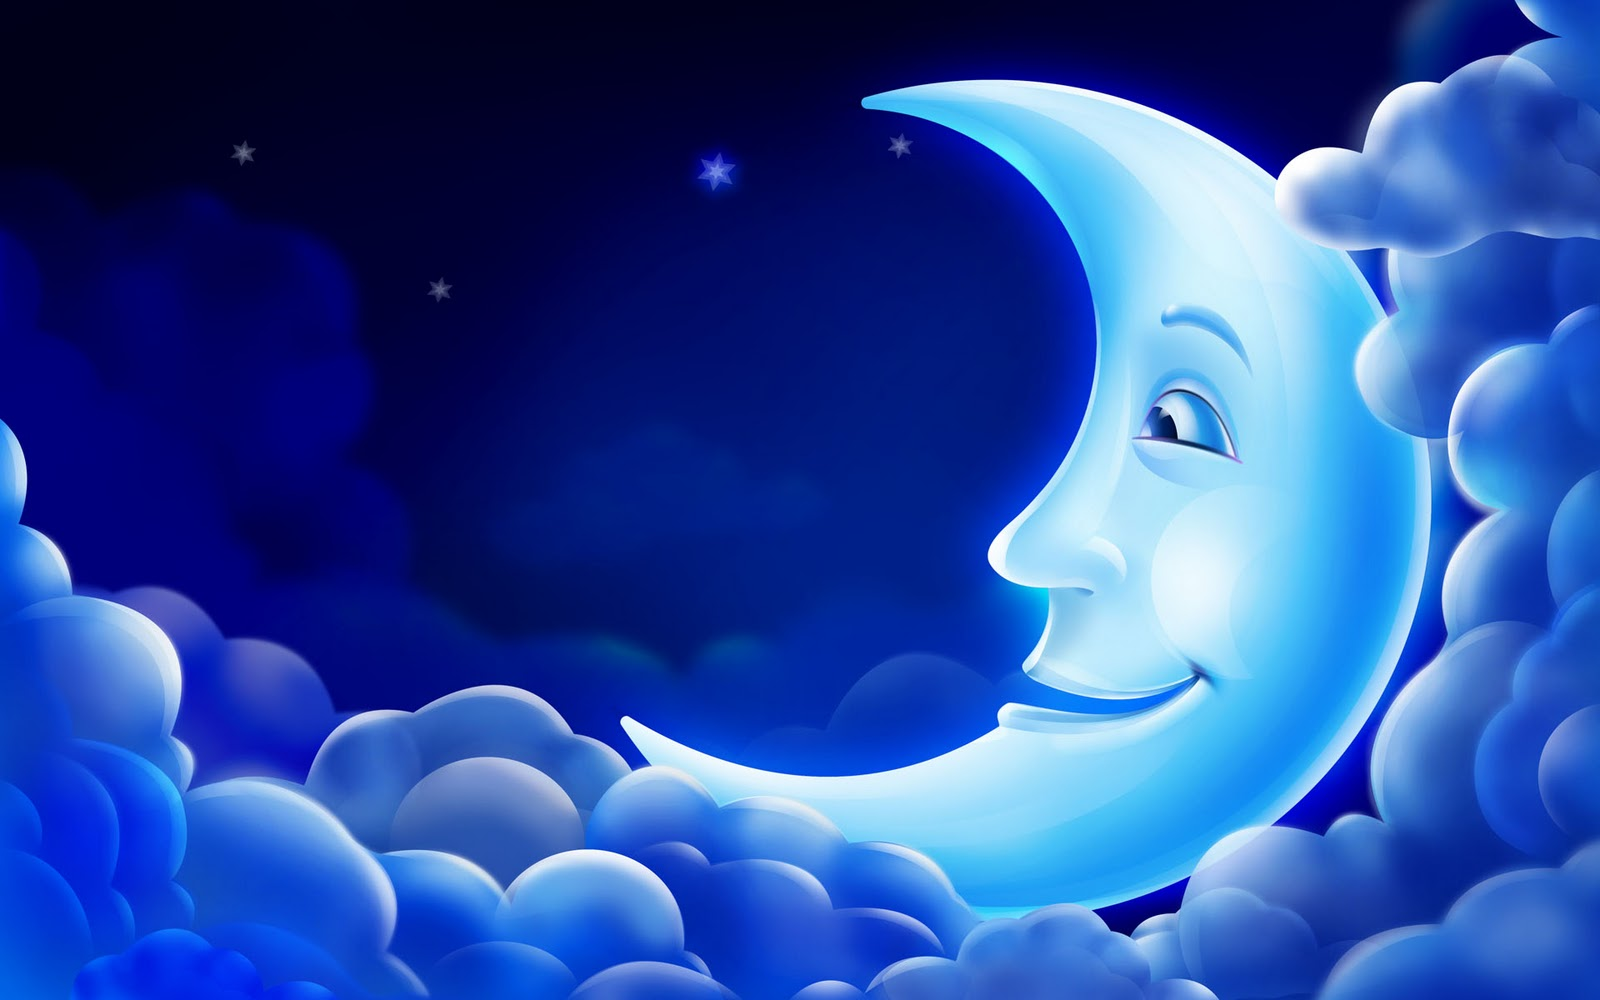 CG 3D Animation PC Background blue moon smile sky star wallpapers 1600x1000